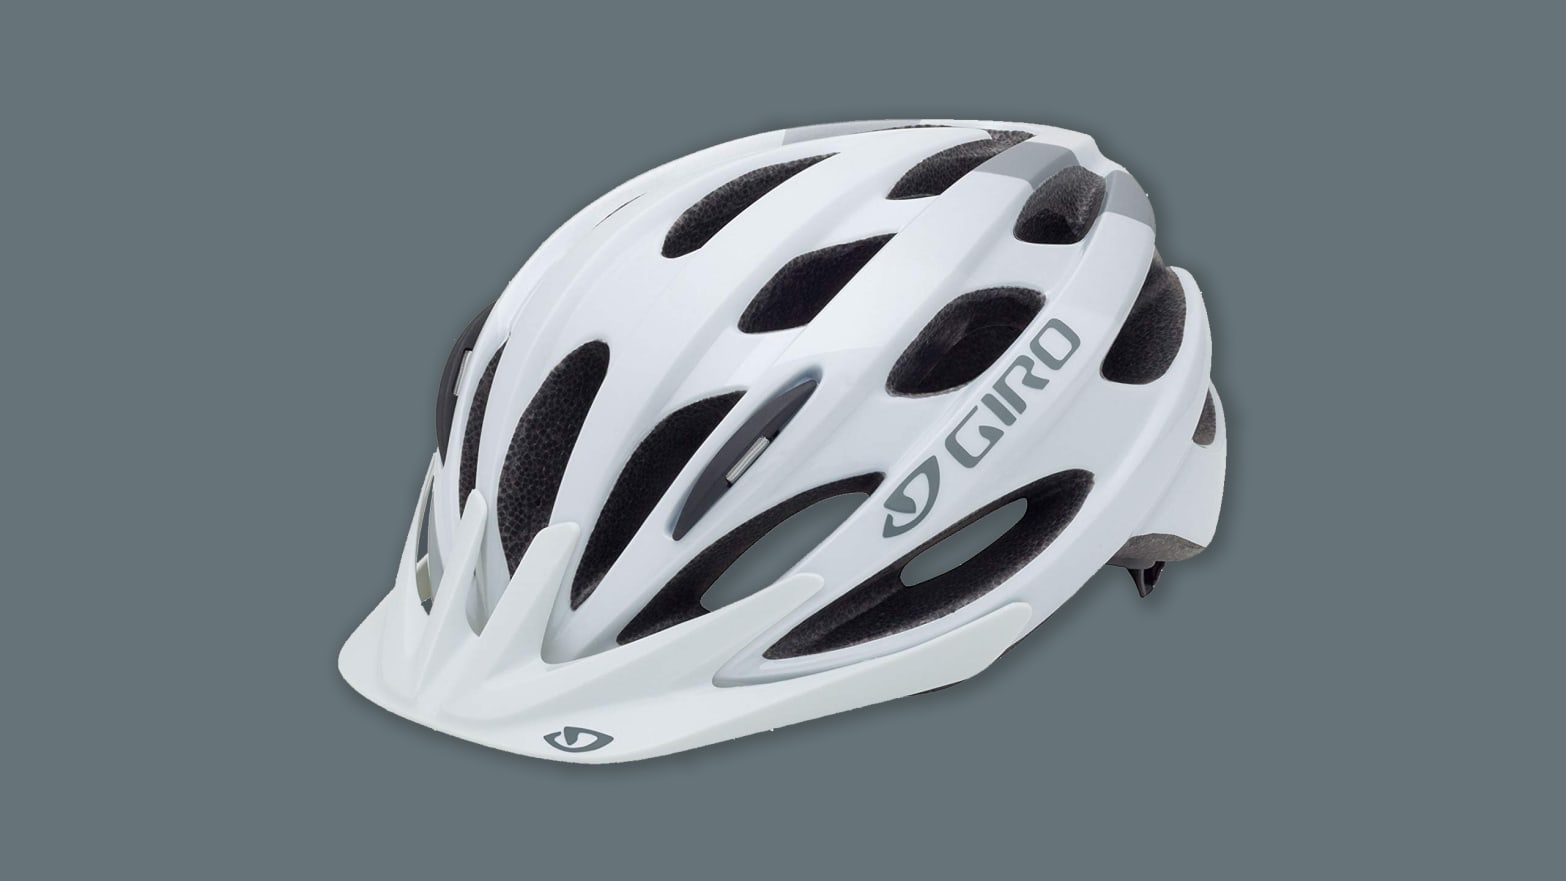 Wear a Helmet While Cycling With My Favorite One on Amazon